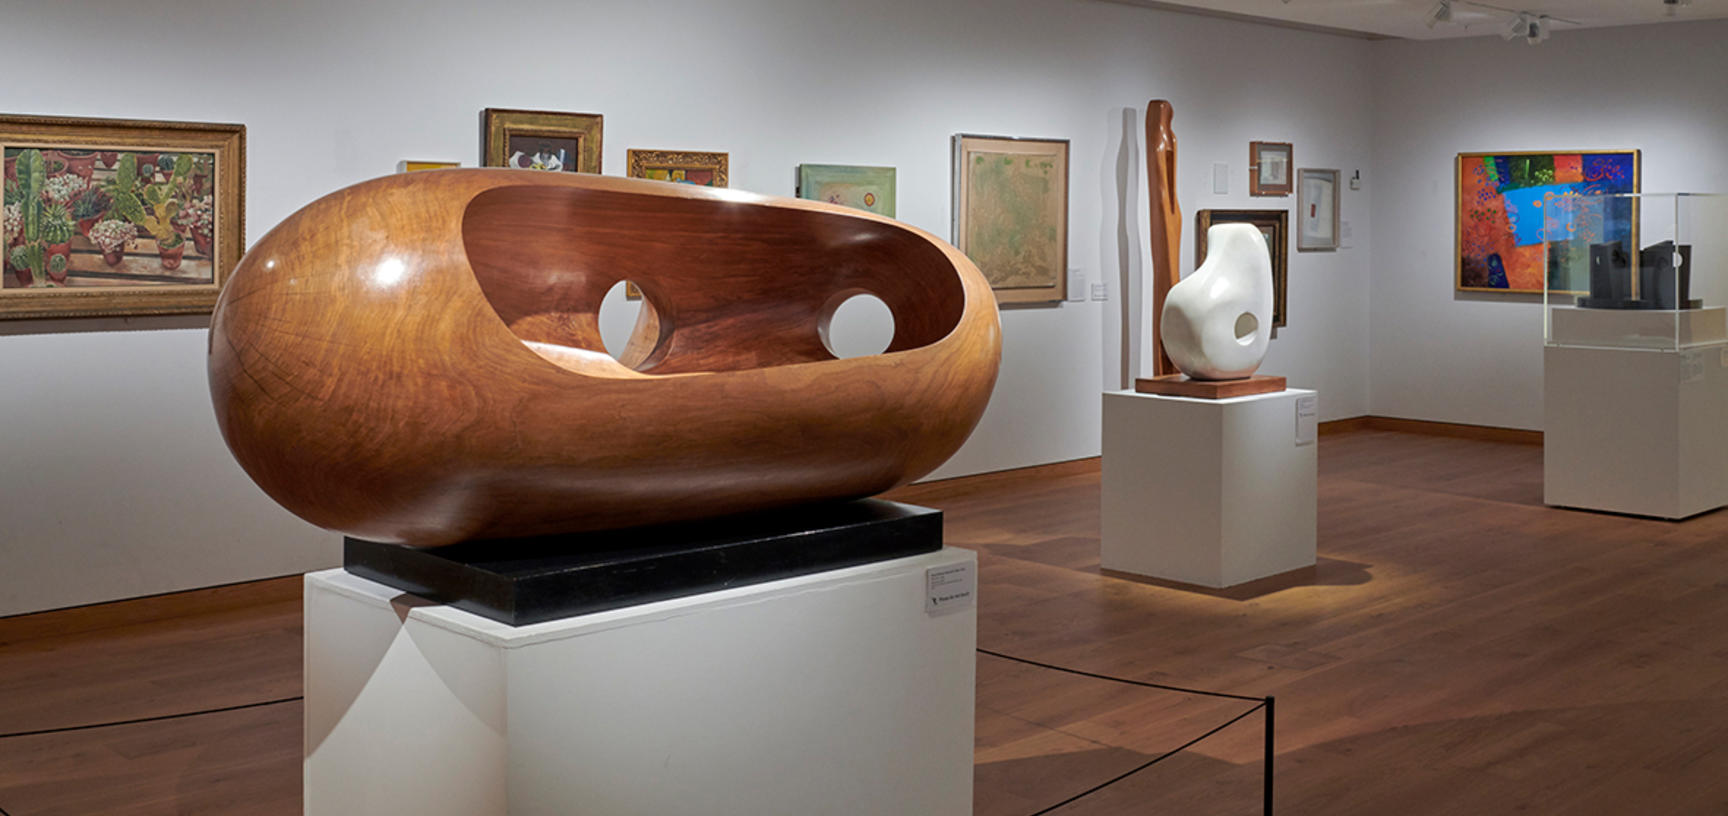 The Modern Art Gallery at the Ashmolean Museum in 2019